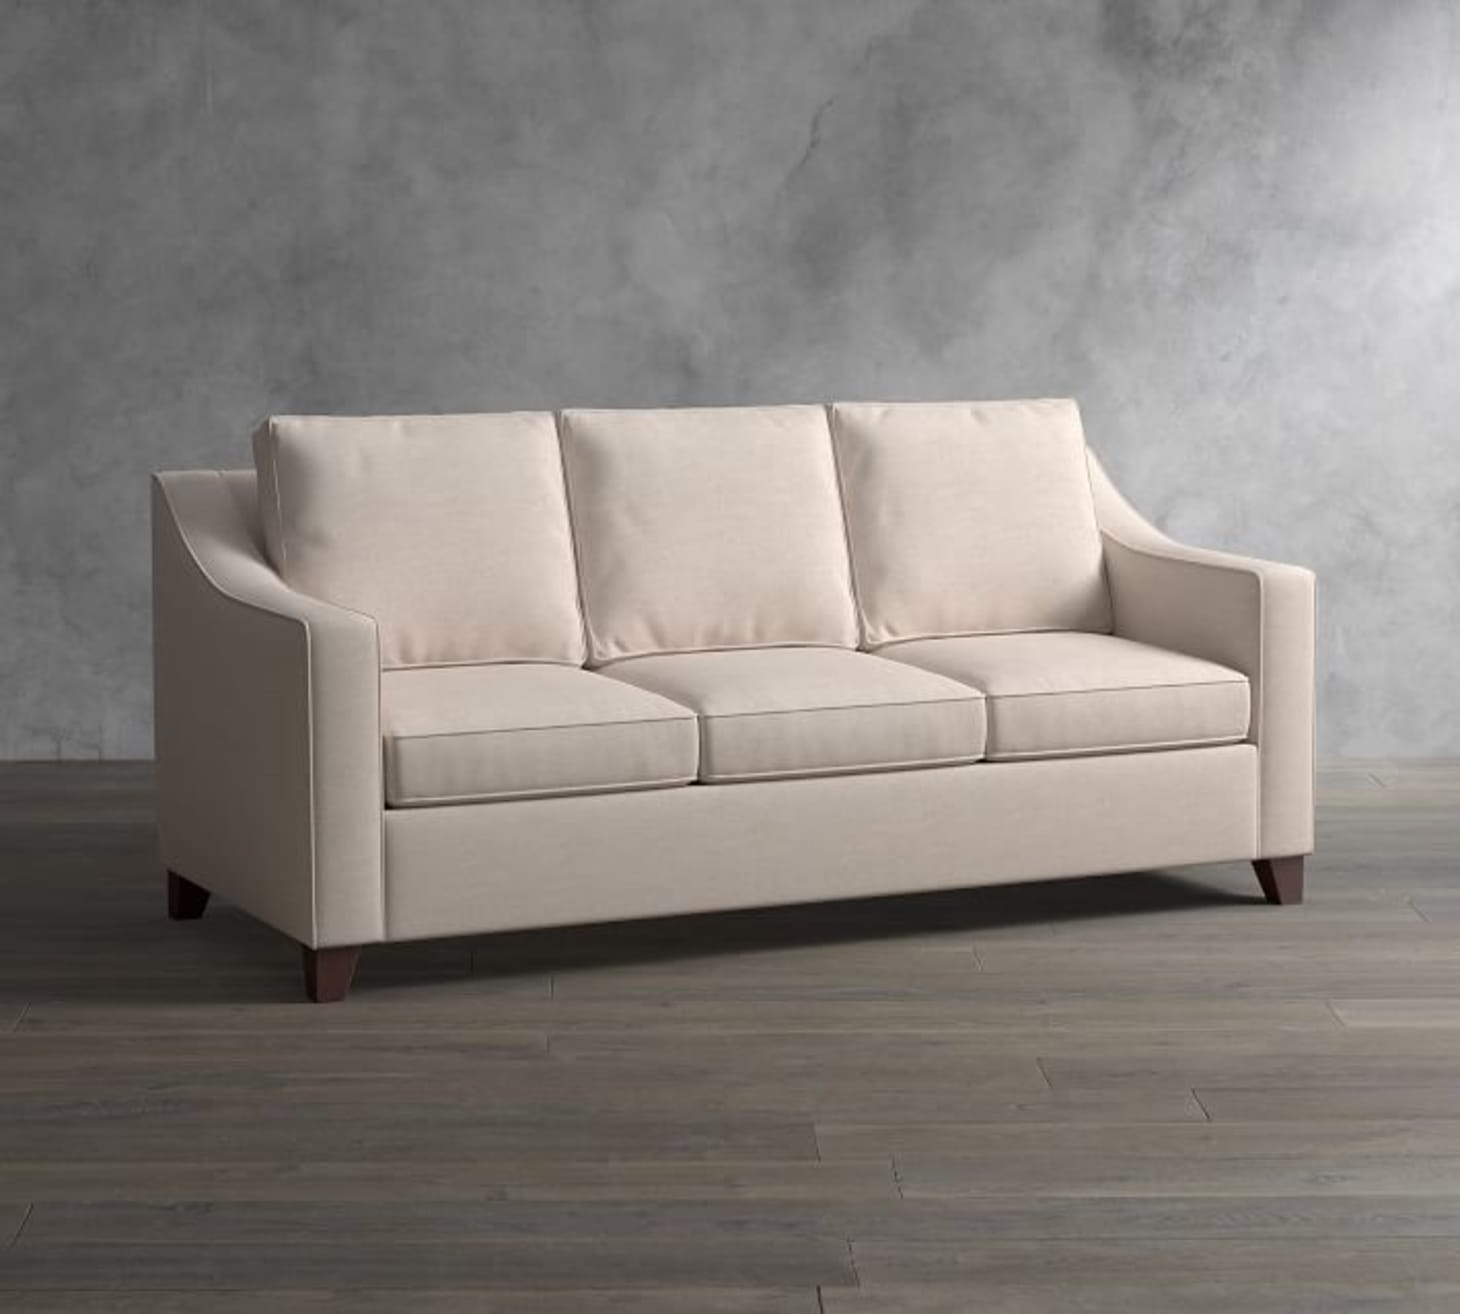 Incredible Pottery Barn Living Room Sale Home Deals September 2019 Unemploymentrelief Wooden Chair Designs For Living Room Unemploymentrelieforg